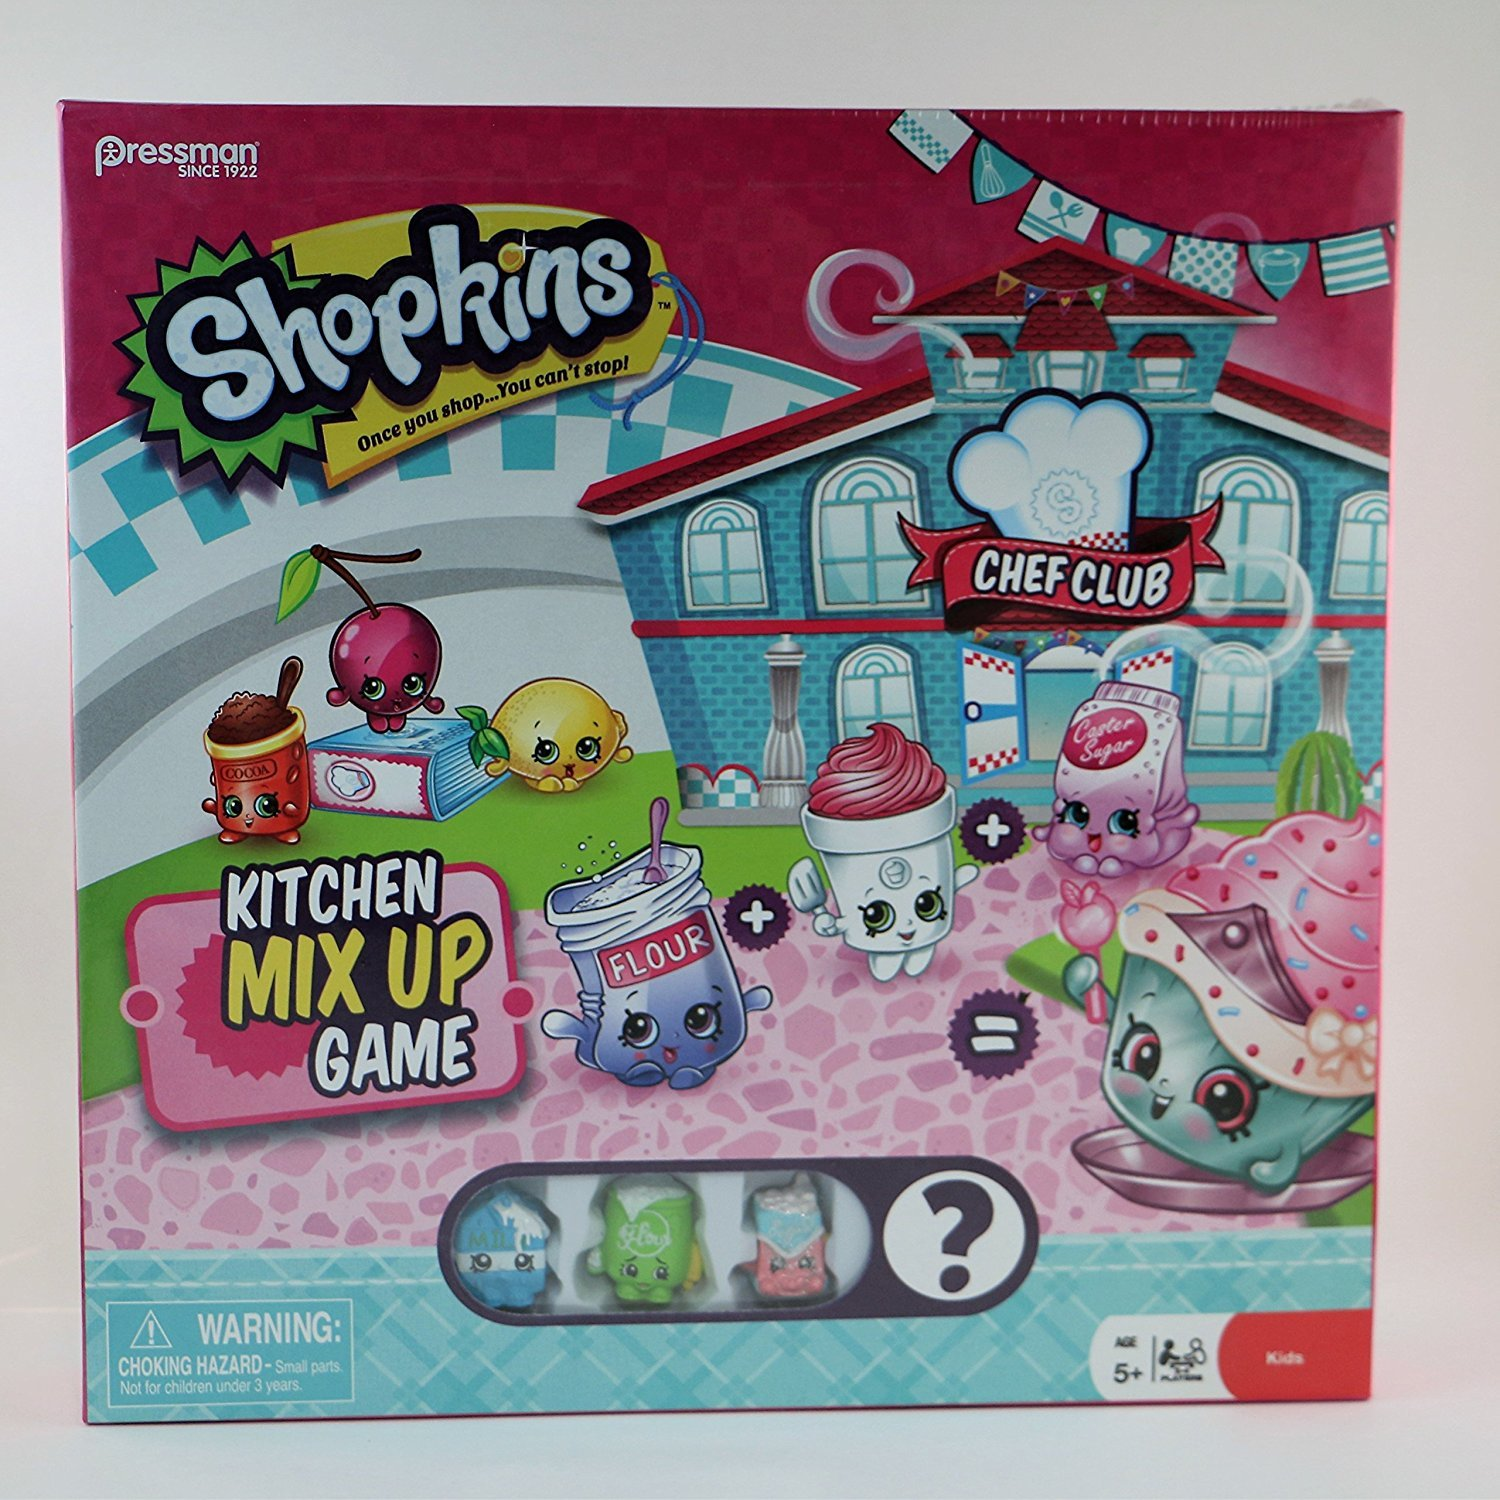 Amazon.com: Shopkins Kitchens Mix Up Game: Toys & Games